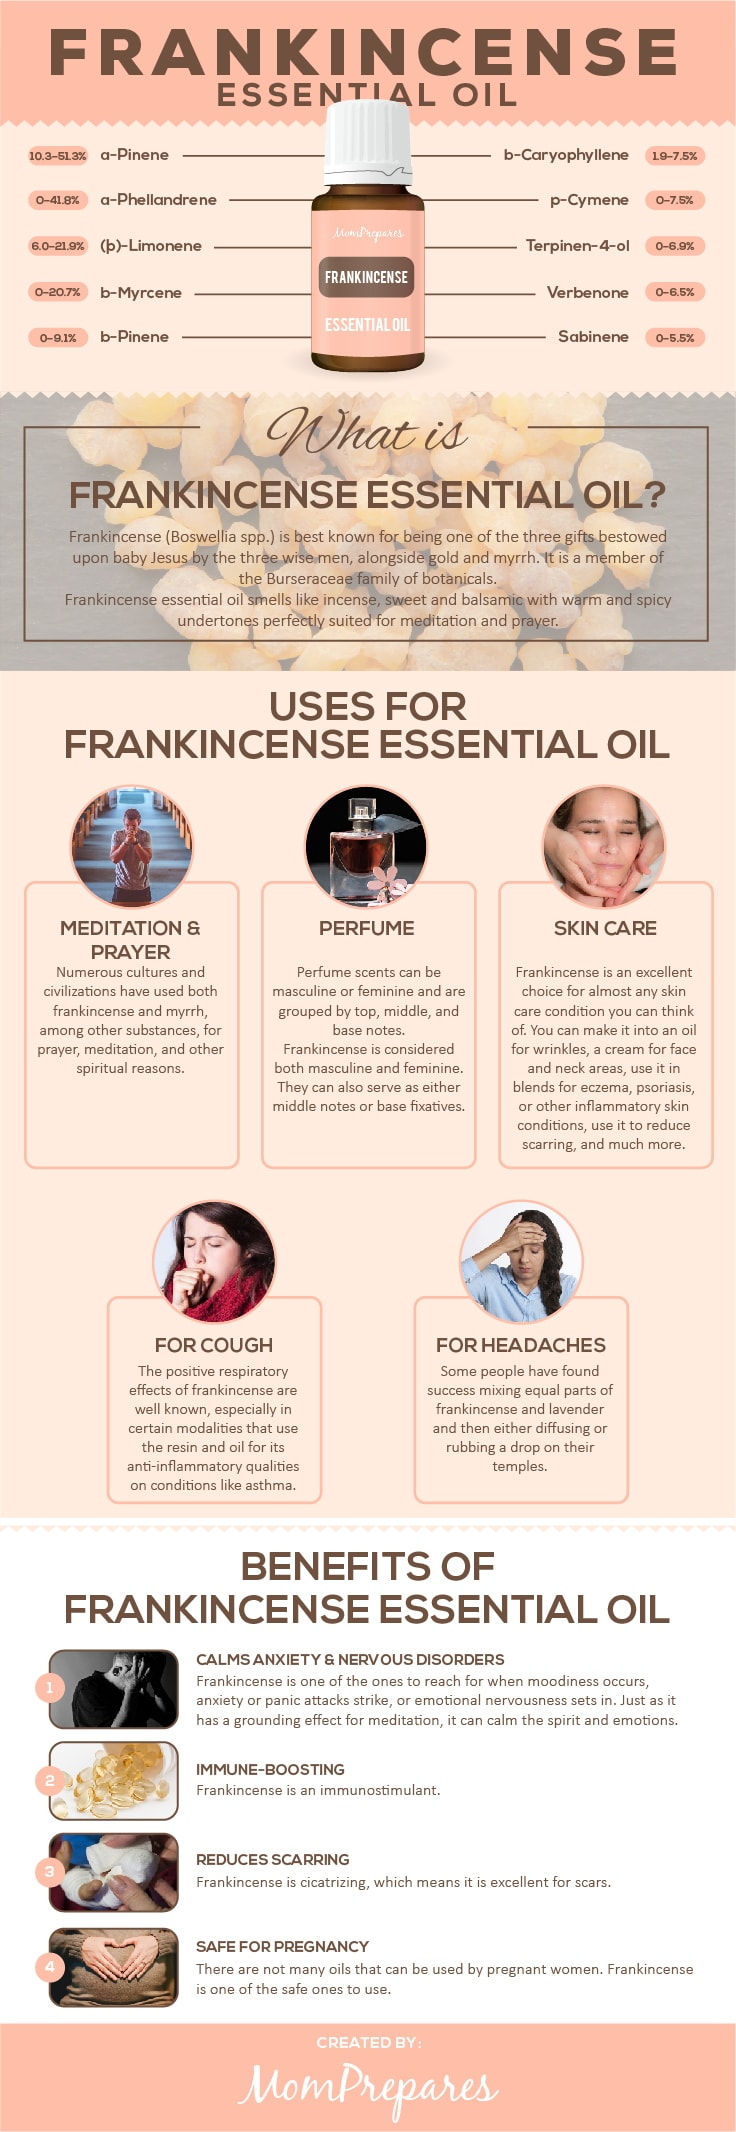 Frankincense Essential Oil - The Complete Uses and Benefits Guide